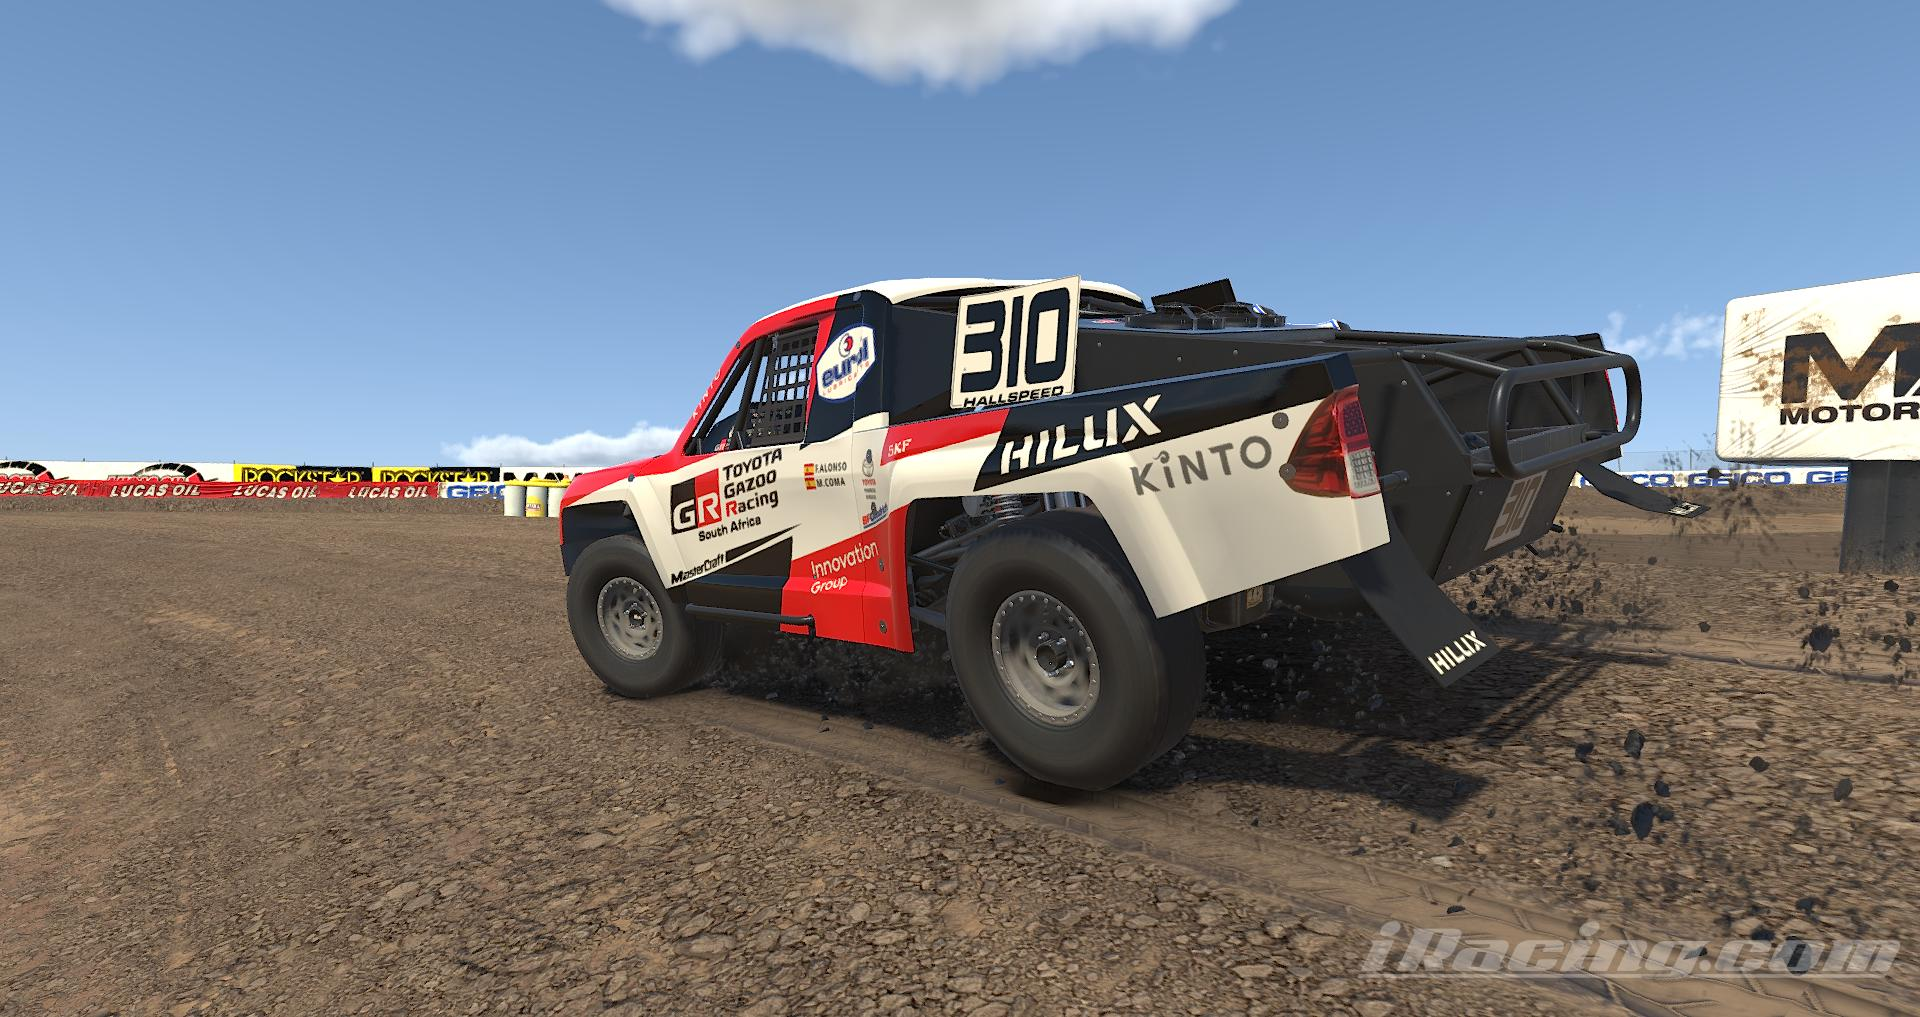 Preview of Team Gazoo Toyota Dakar Hilux - Alonso / Coma - Pro 2 Lite by Steve Ficacci